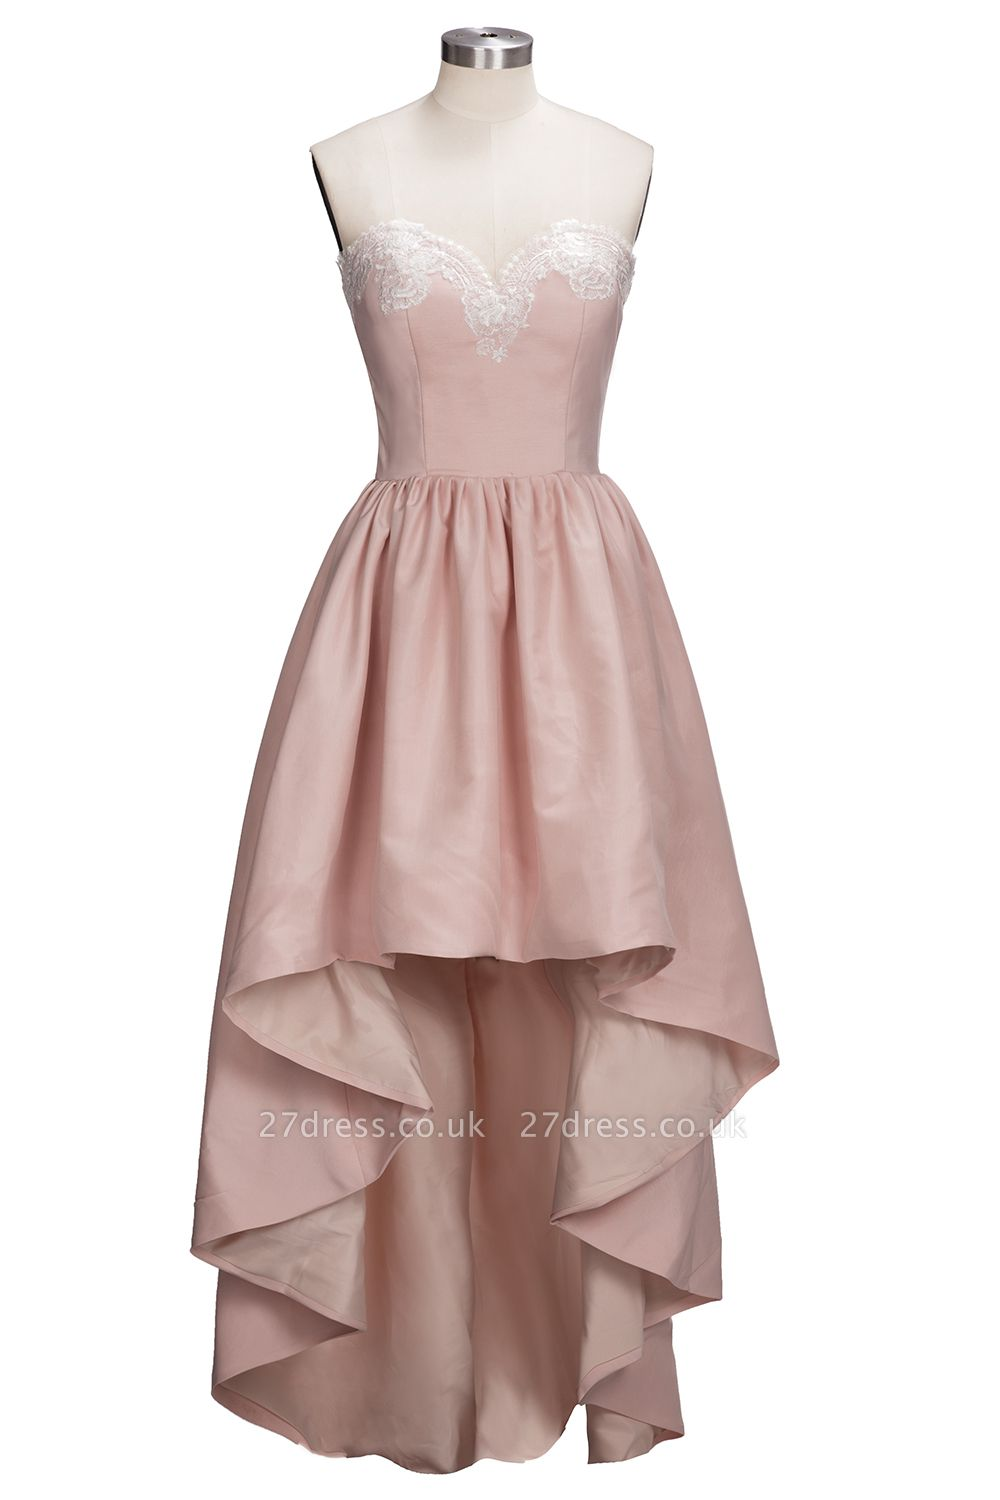 Ball-Gown Lace High-low Sweetheart Modern Cocktail Dress UK LPL104